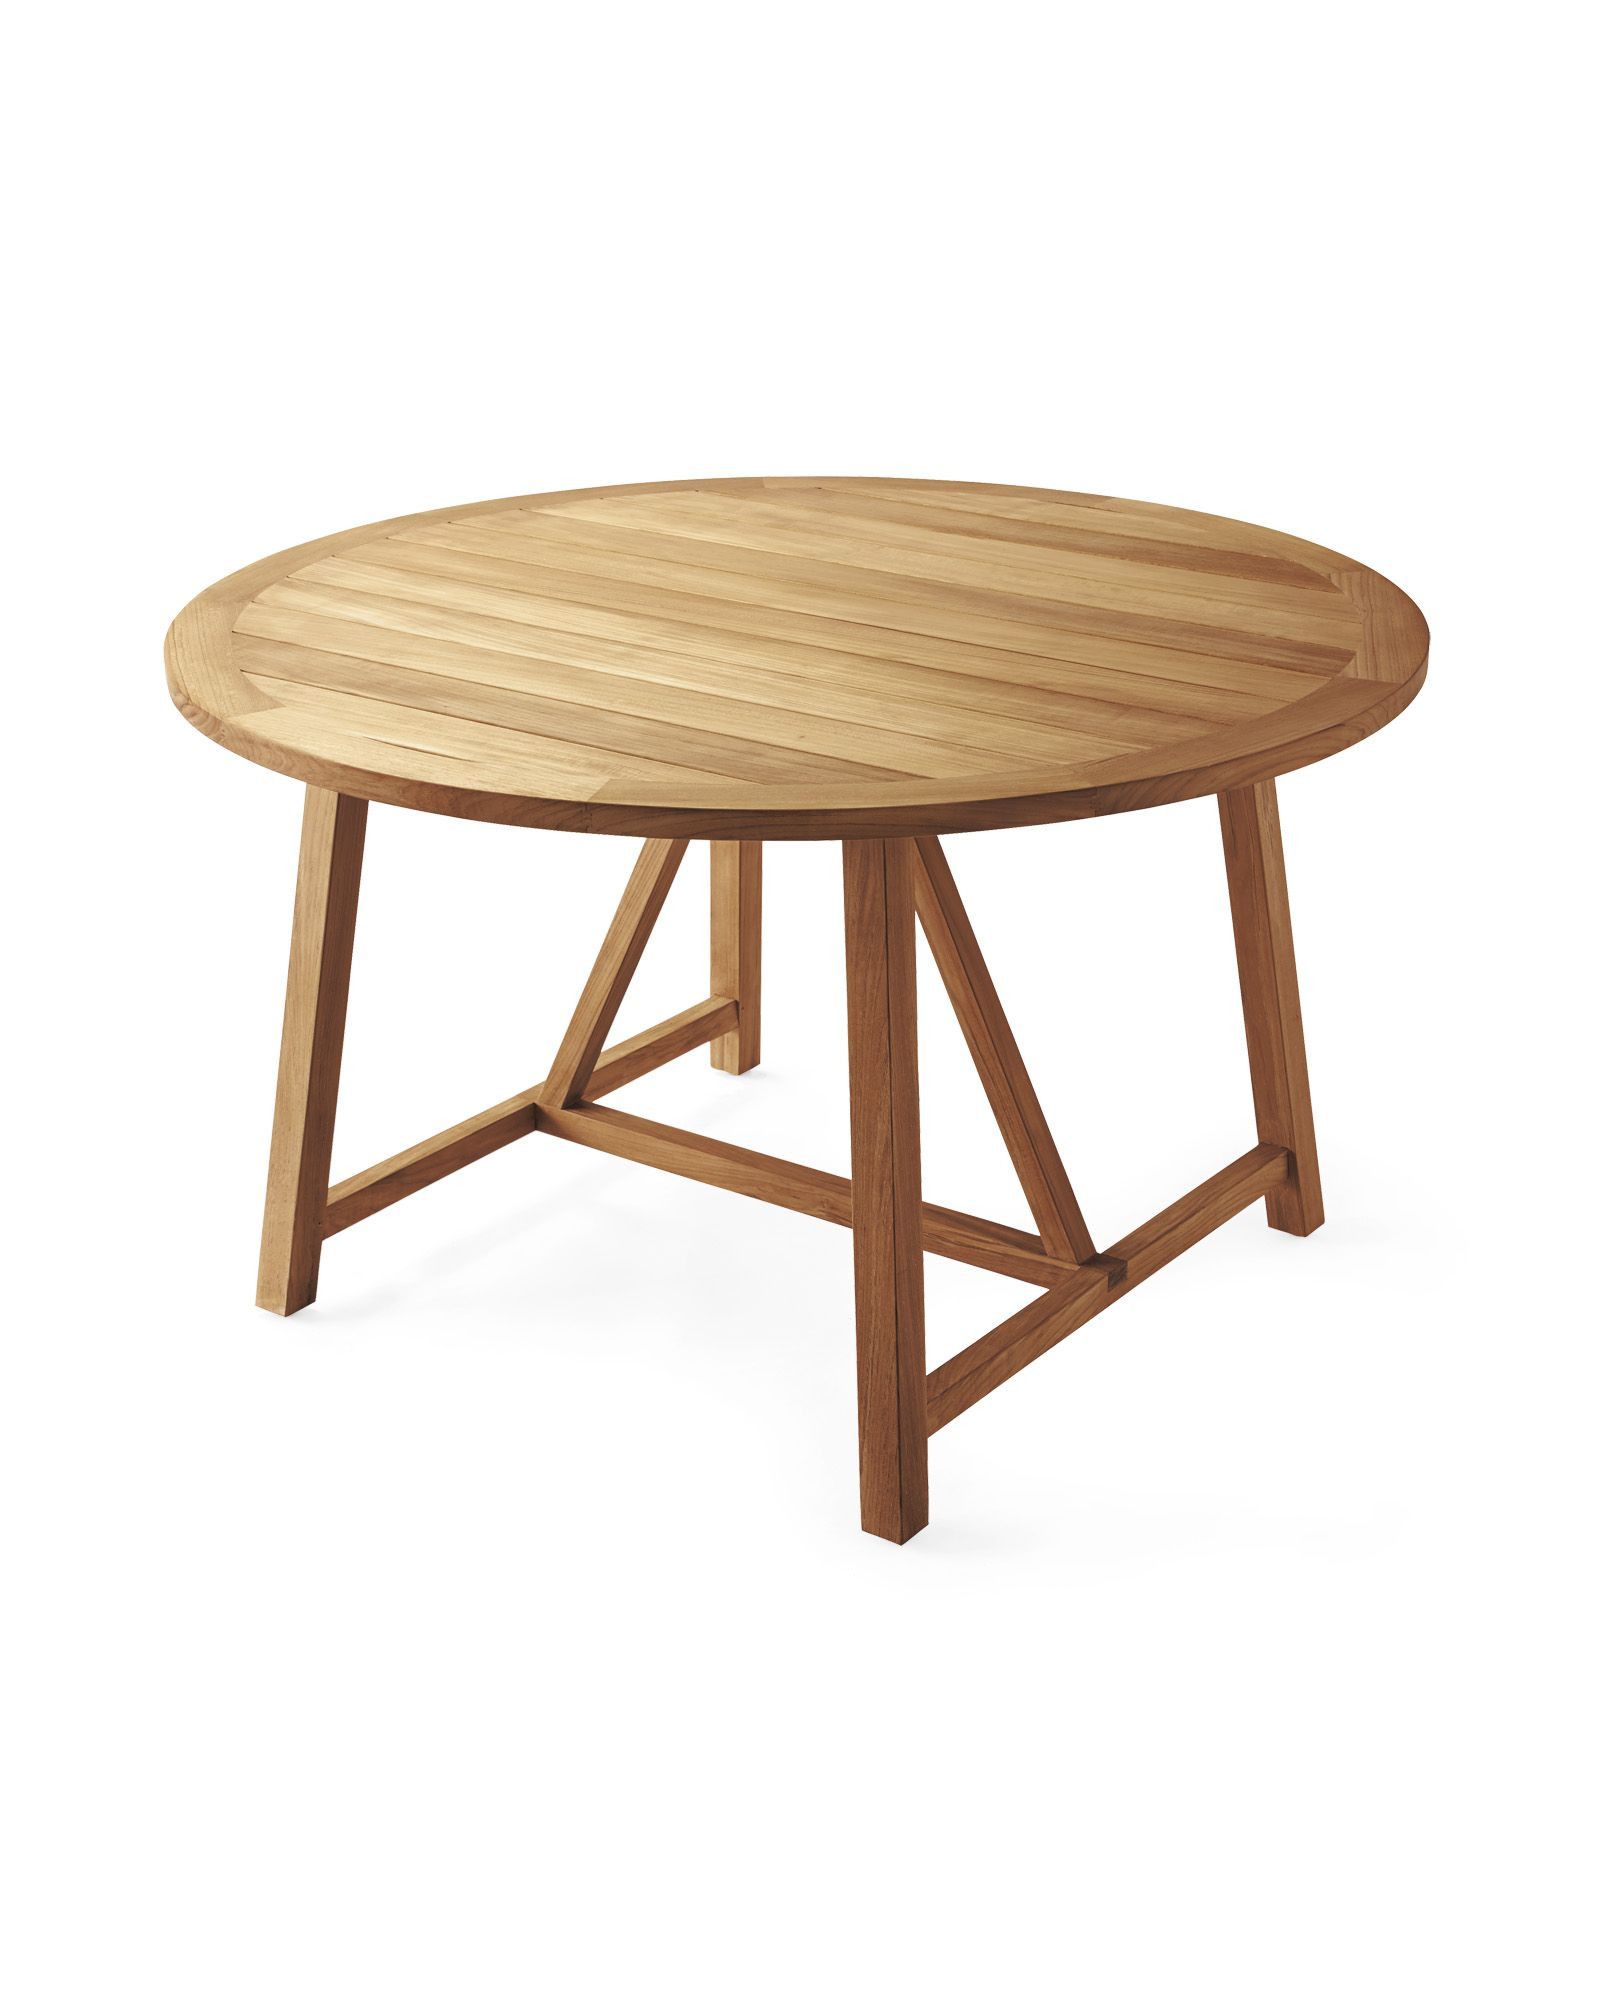 Crosby Teak Round Dining Table Natural Round Dining Table Teak Dining Table Round Dining